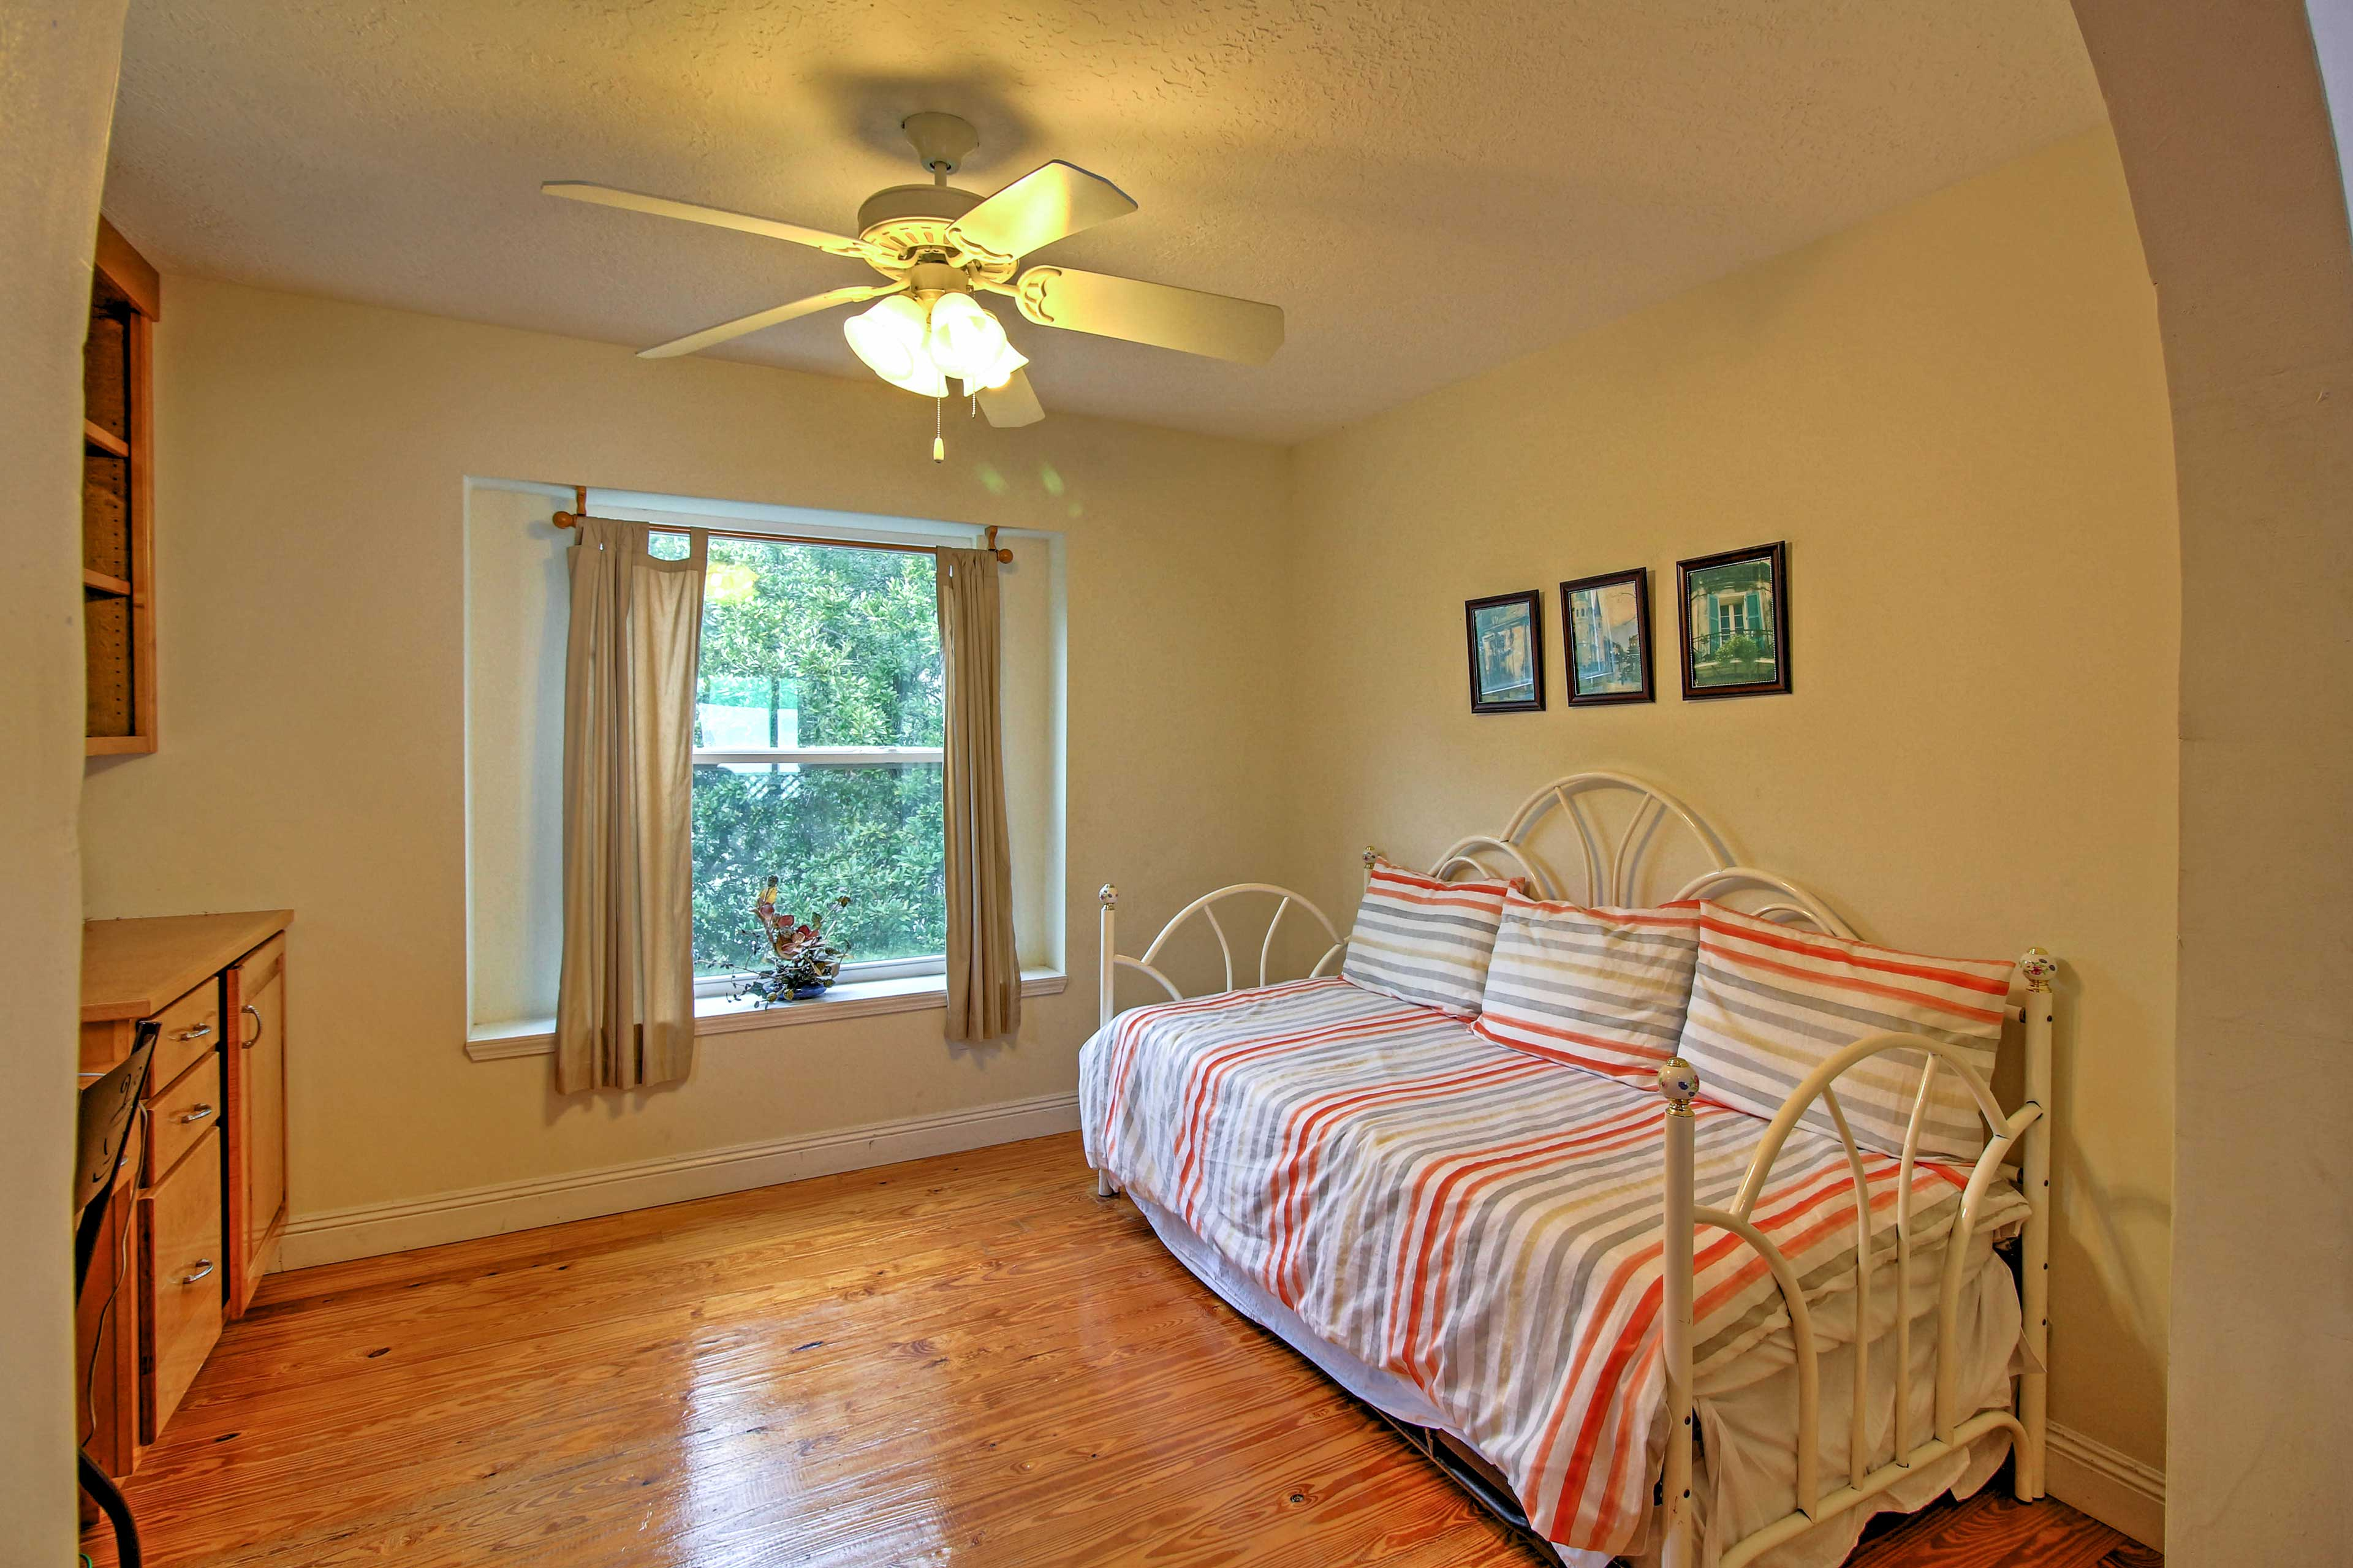 The office area features additional sleeping, including a hidden trundle bed underneath.